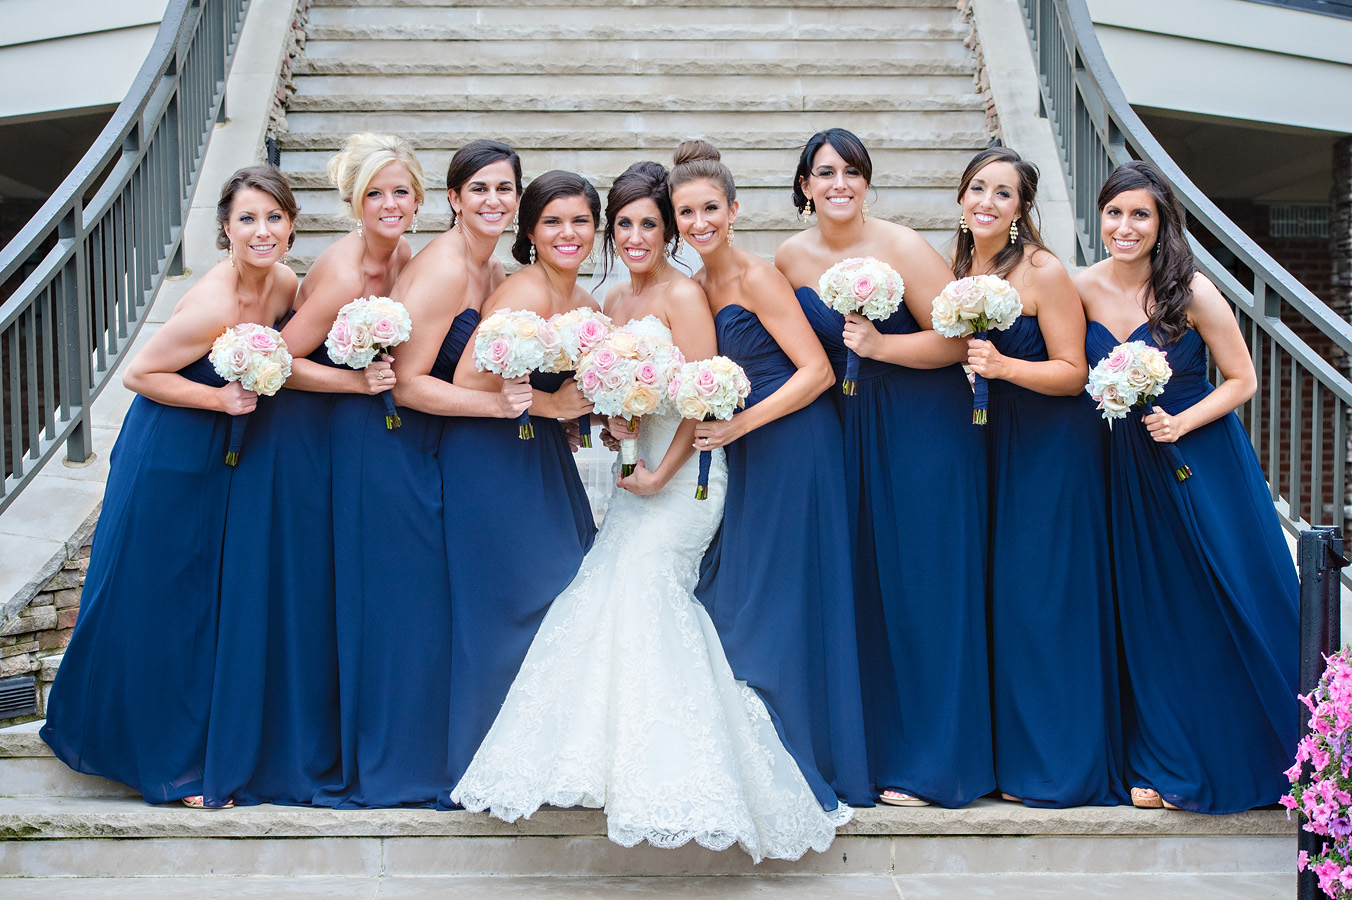 Traditional bridal party image